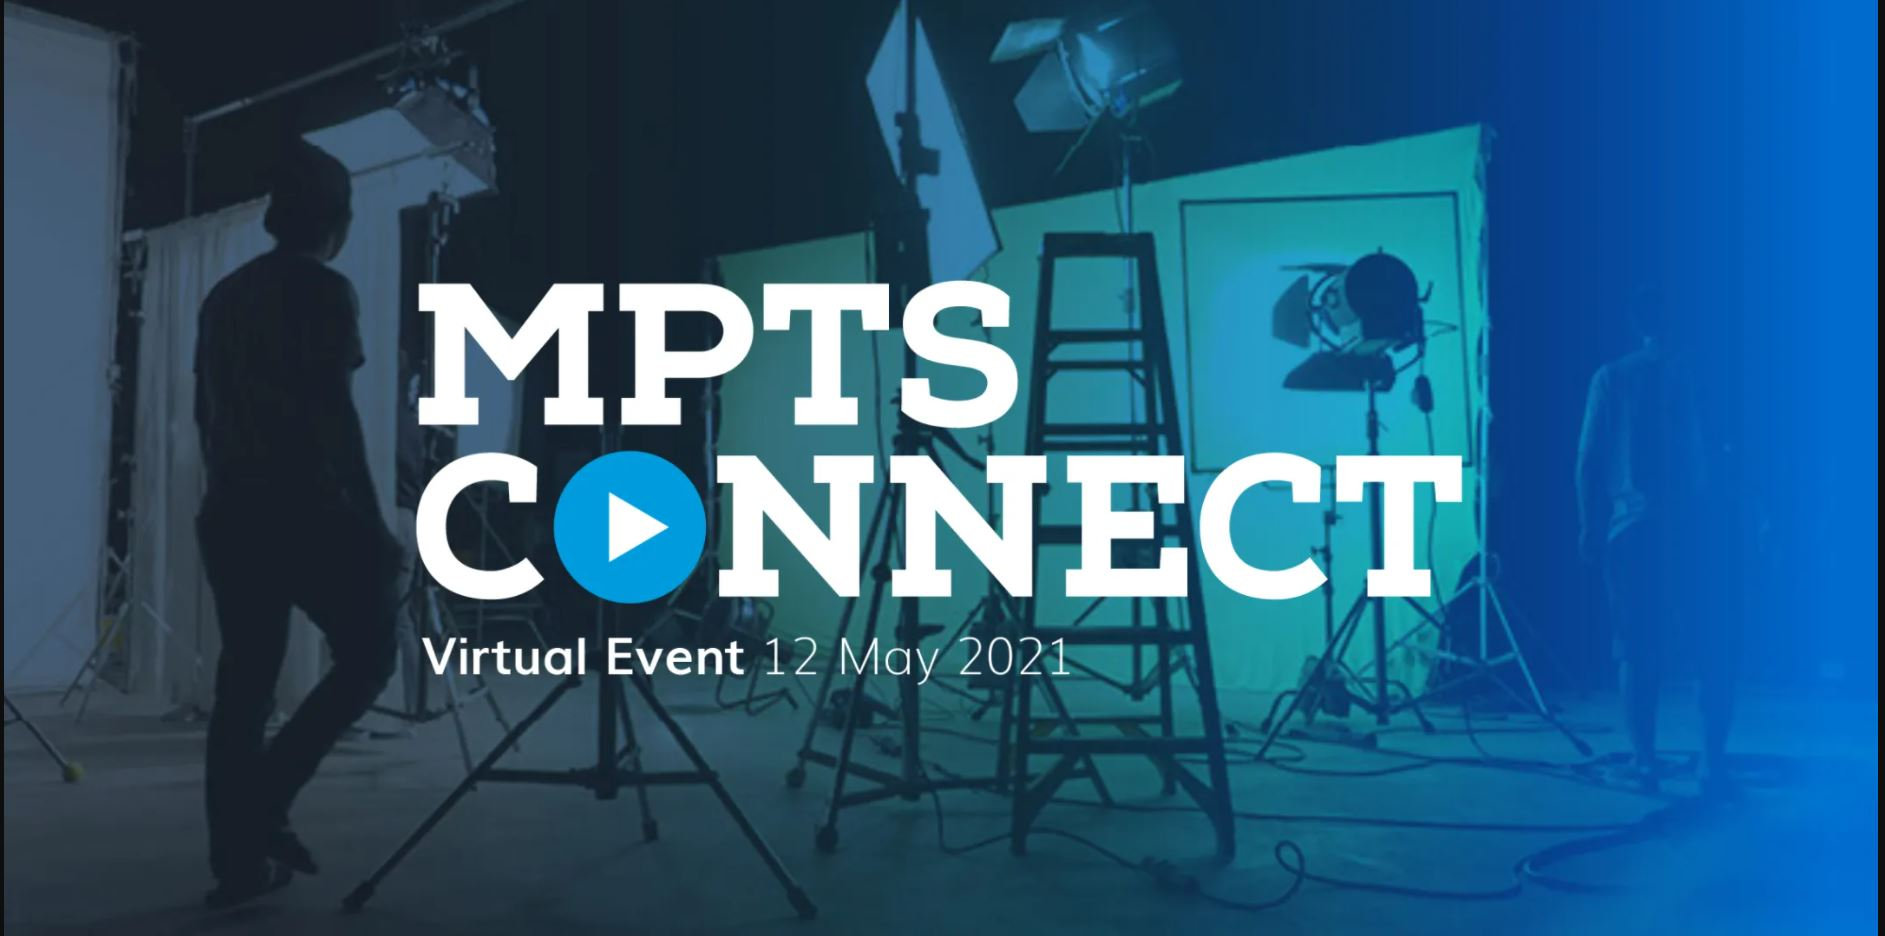 MPTS Connect Virtual Event Poster